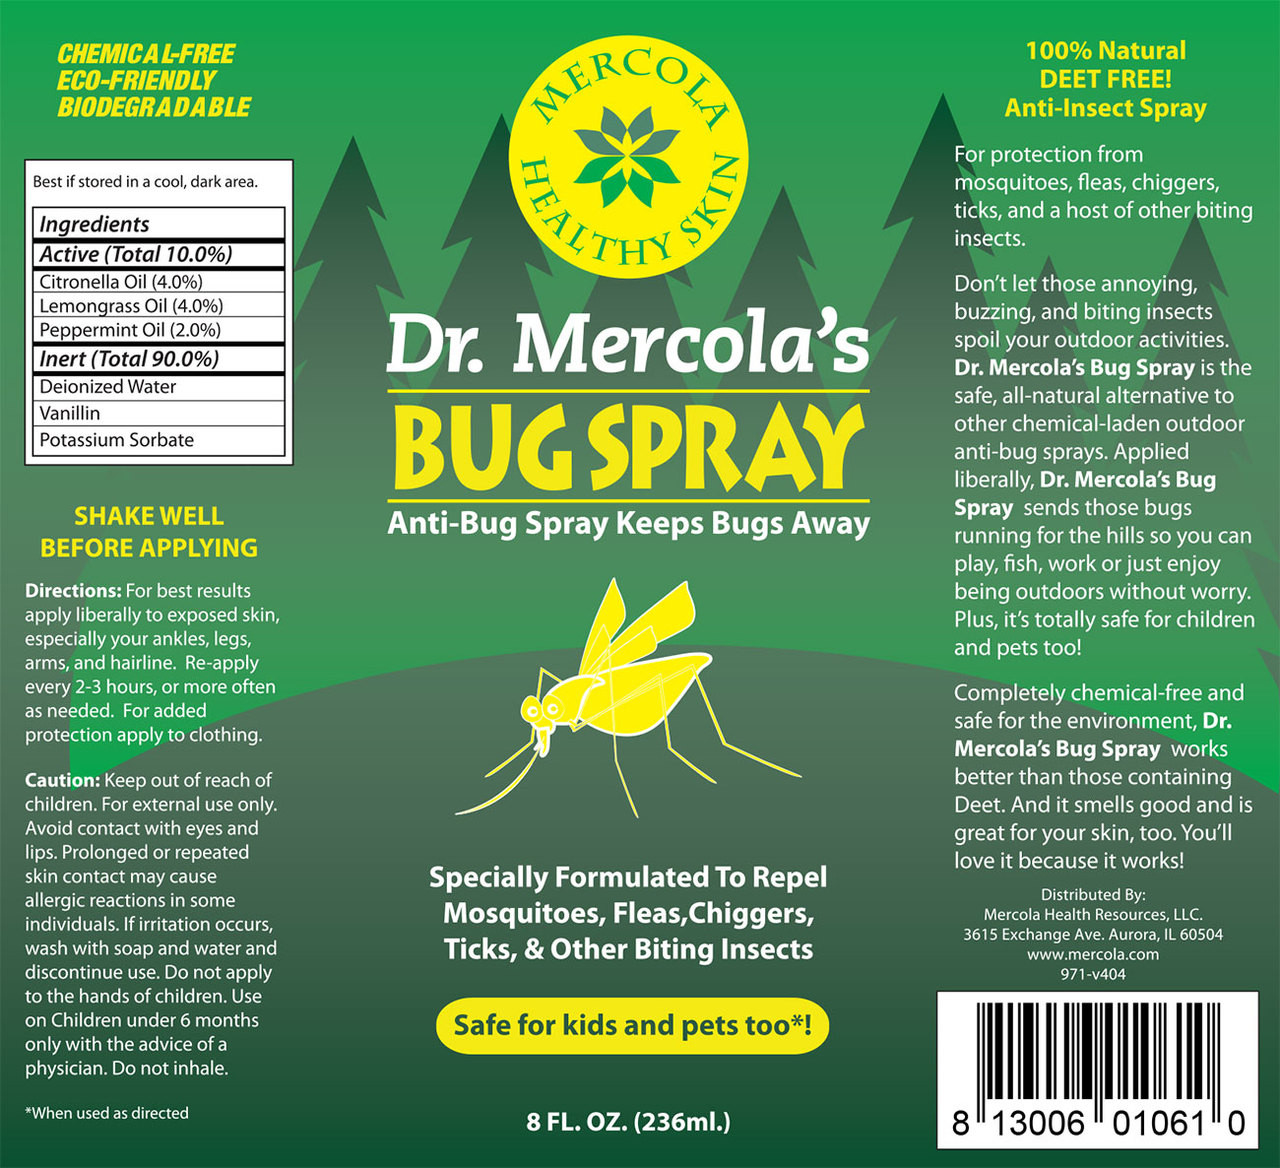 View of full label for Dr. Mercola's Bug Spray including ingredients.